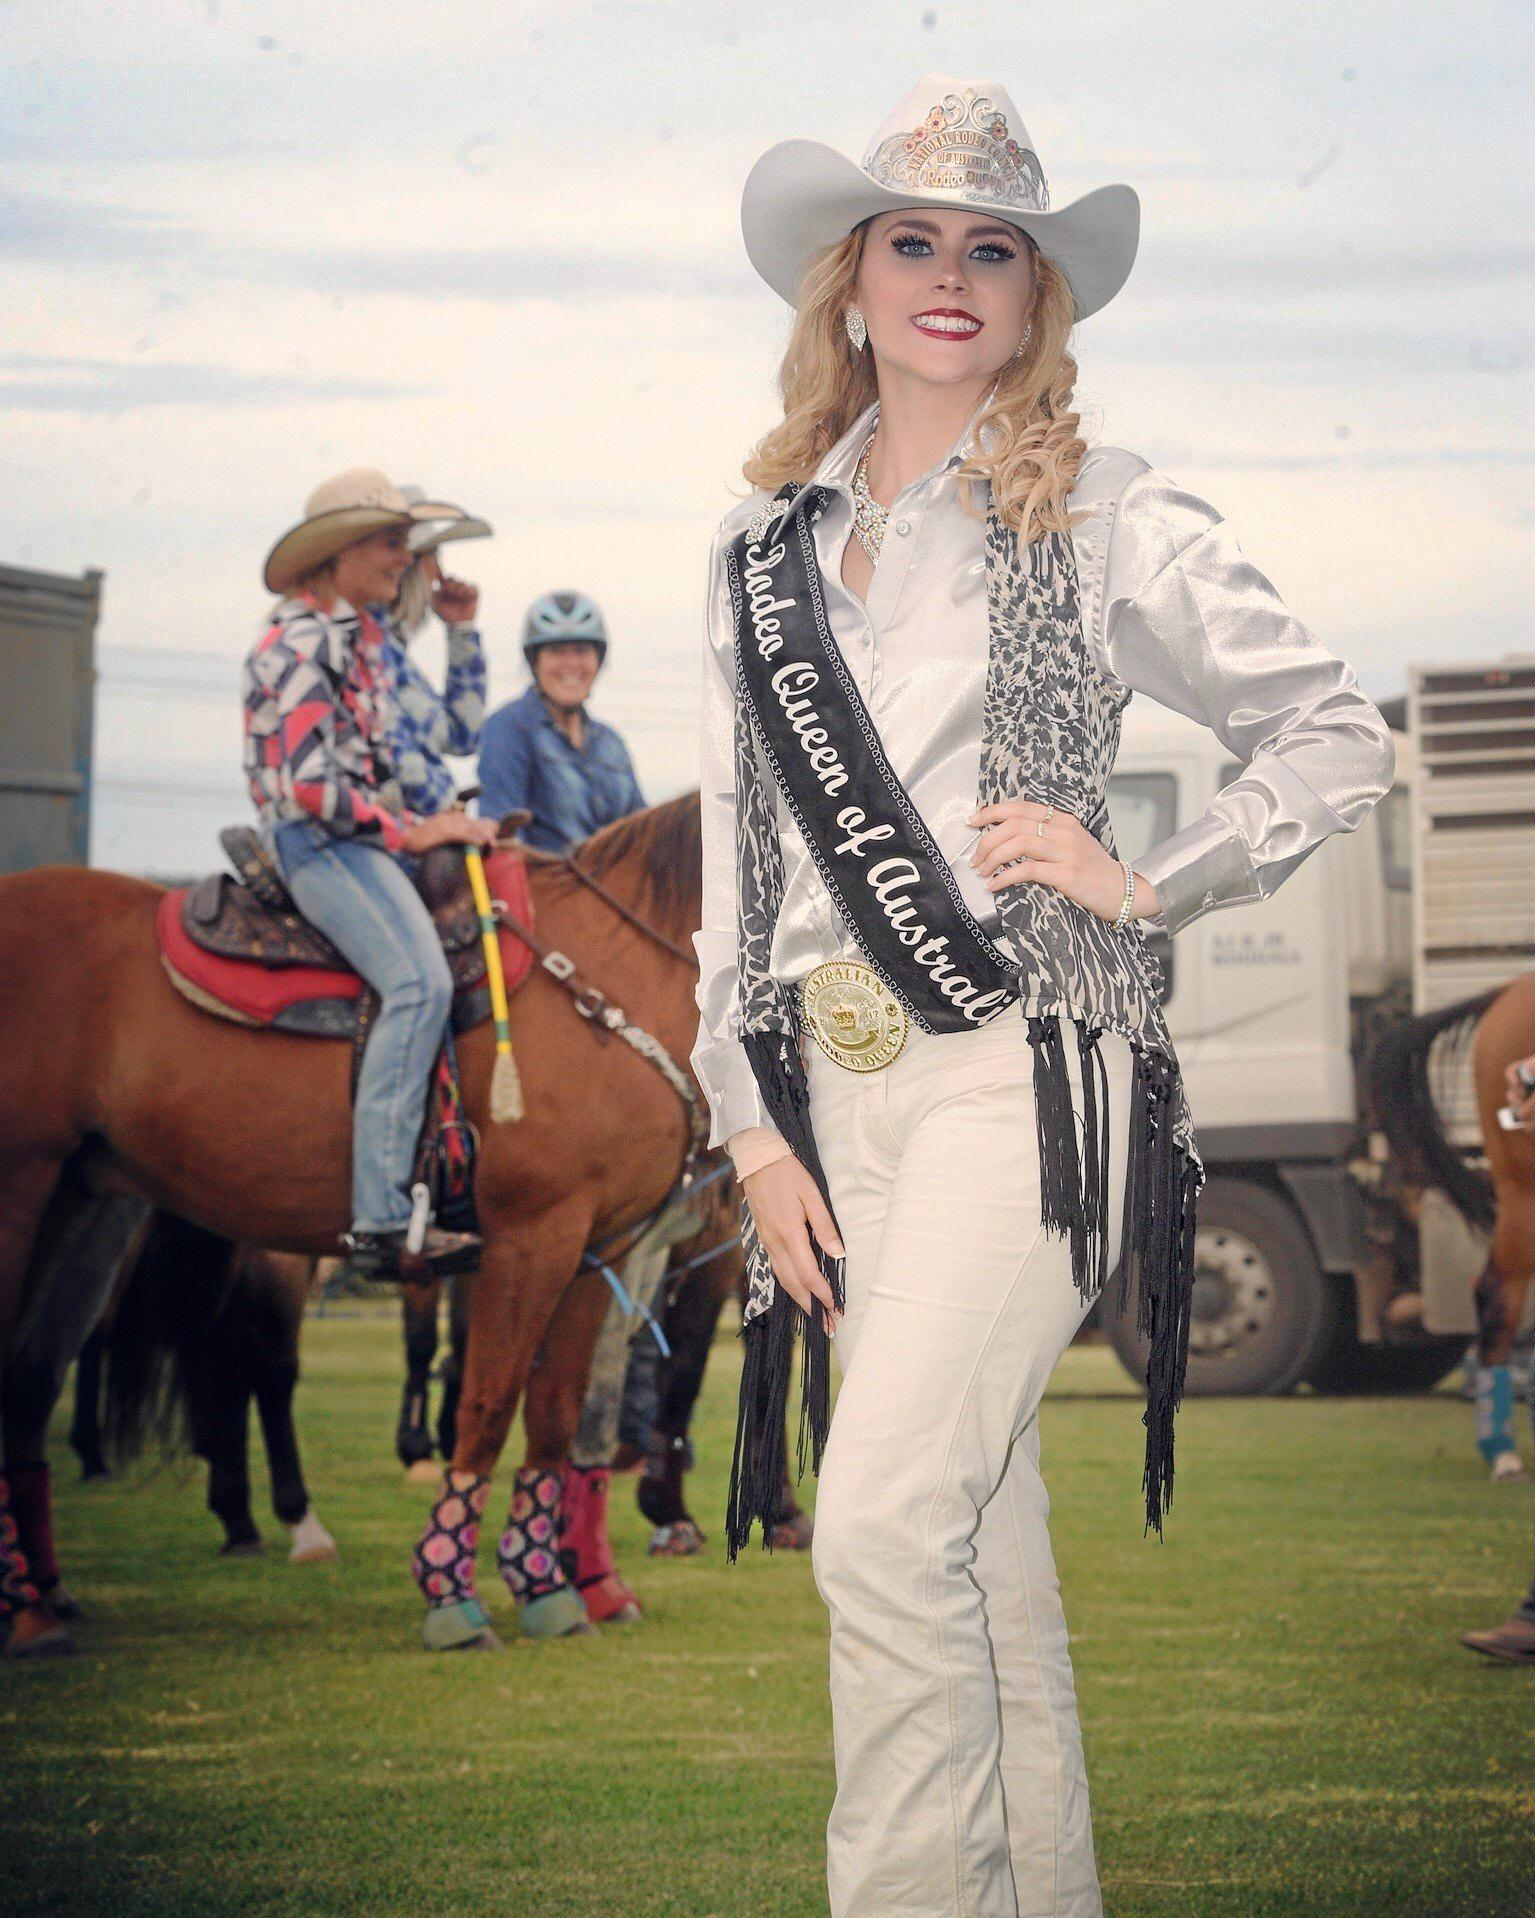 Rodeo Queen of Australia Bessie Smits will meet all her appearances as queen.